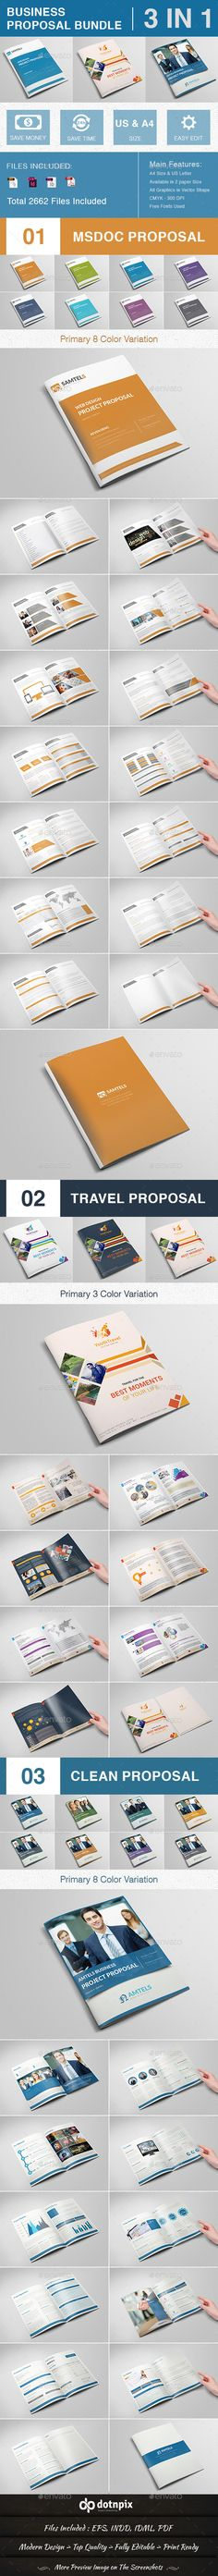 A step by step guide to project proposals via